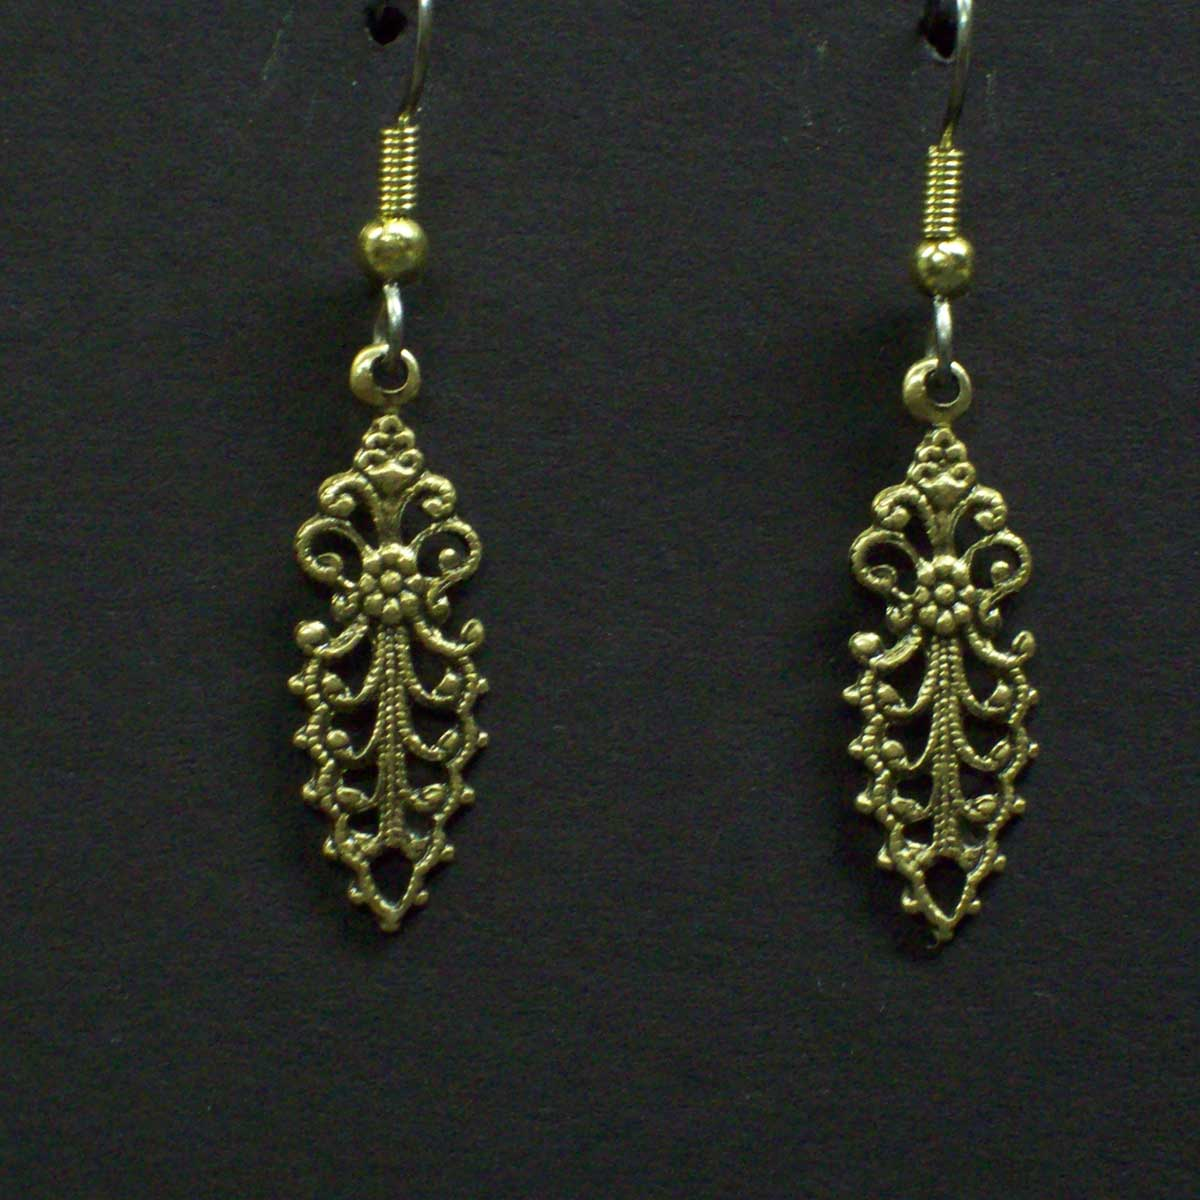 Small Filigree Victorian Earrings